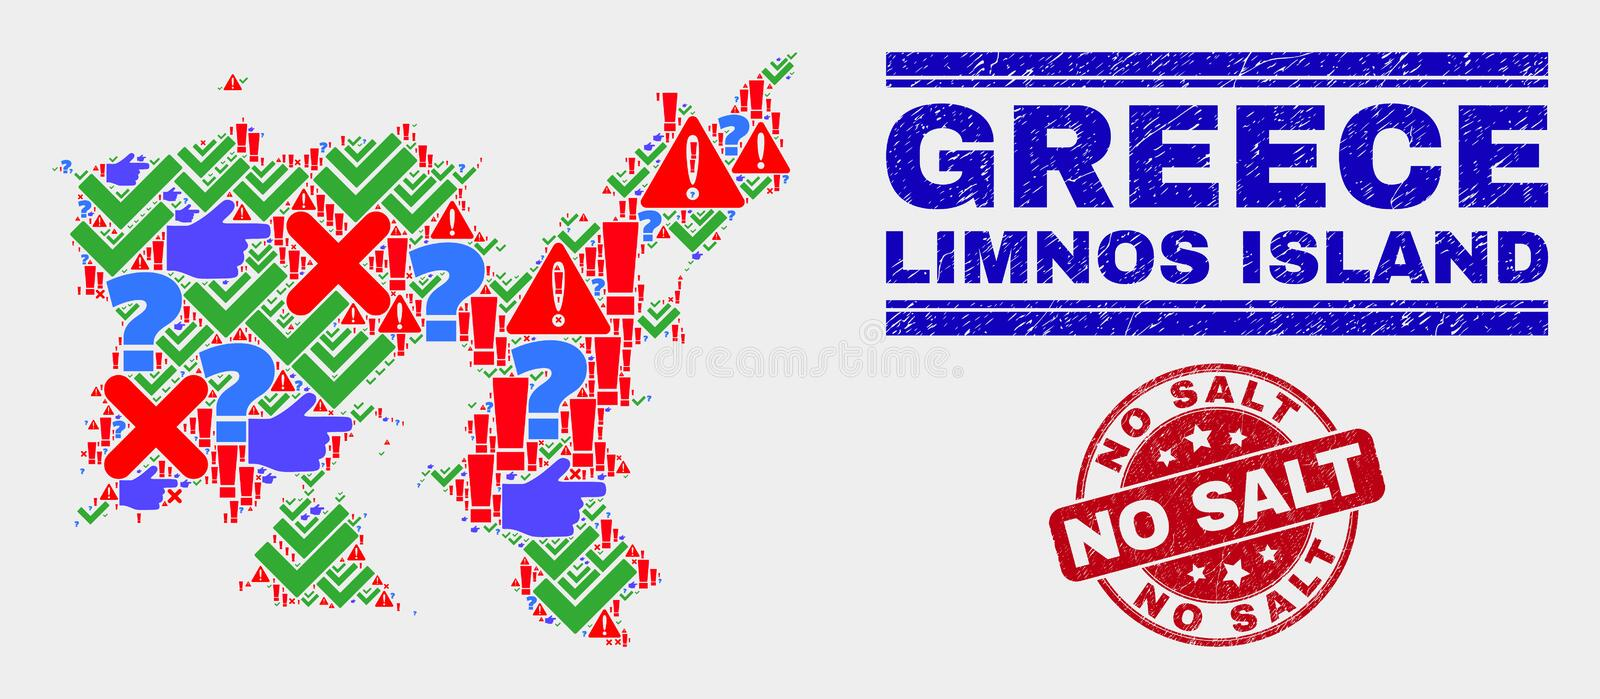 Collage of Limnos Island Map Symbol Mosaic and Grunge No Salt Stamp Seal stock illustration